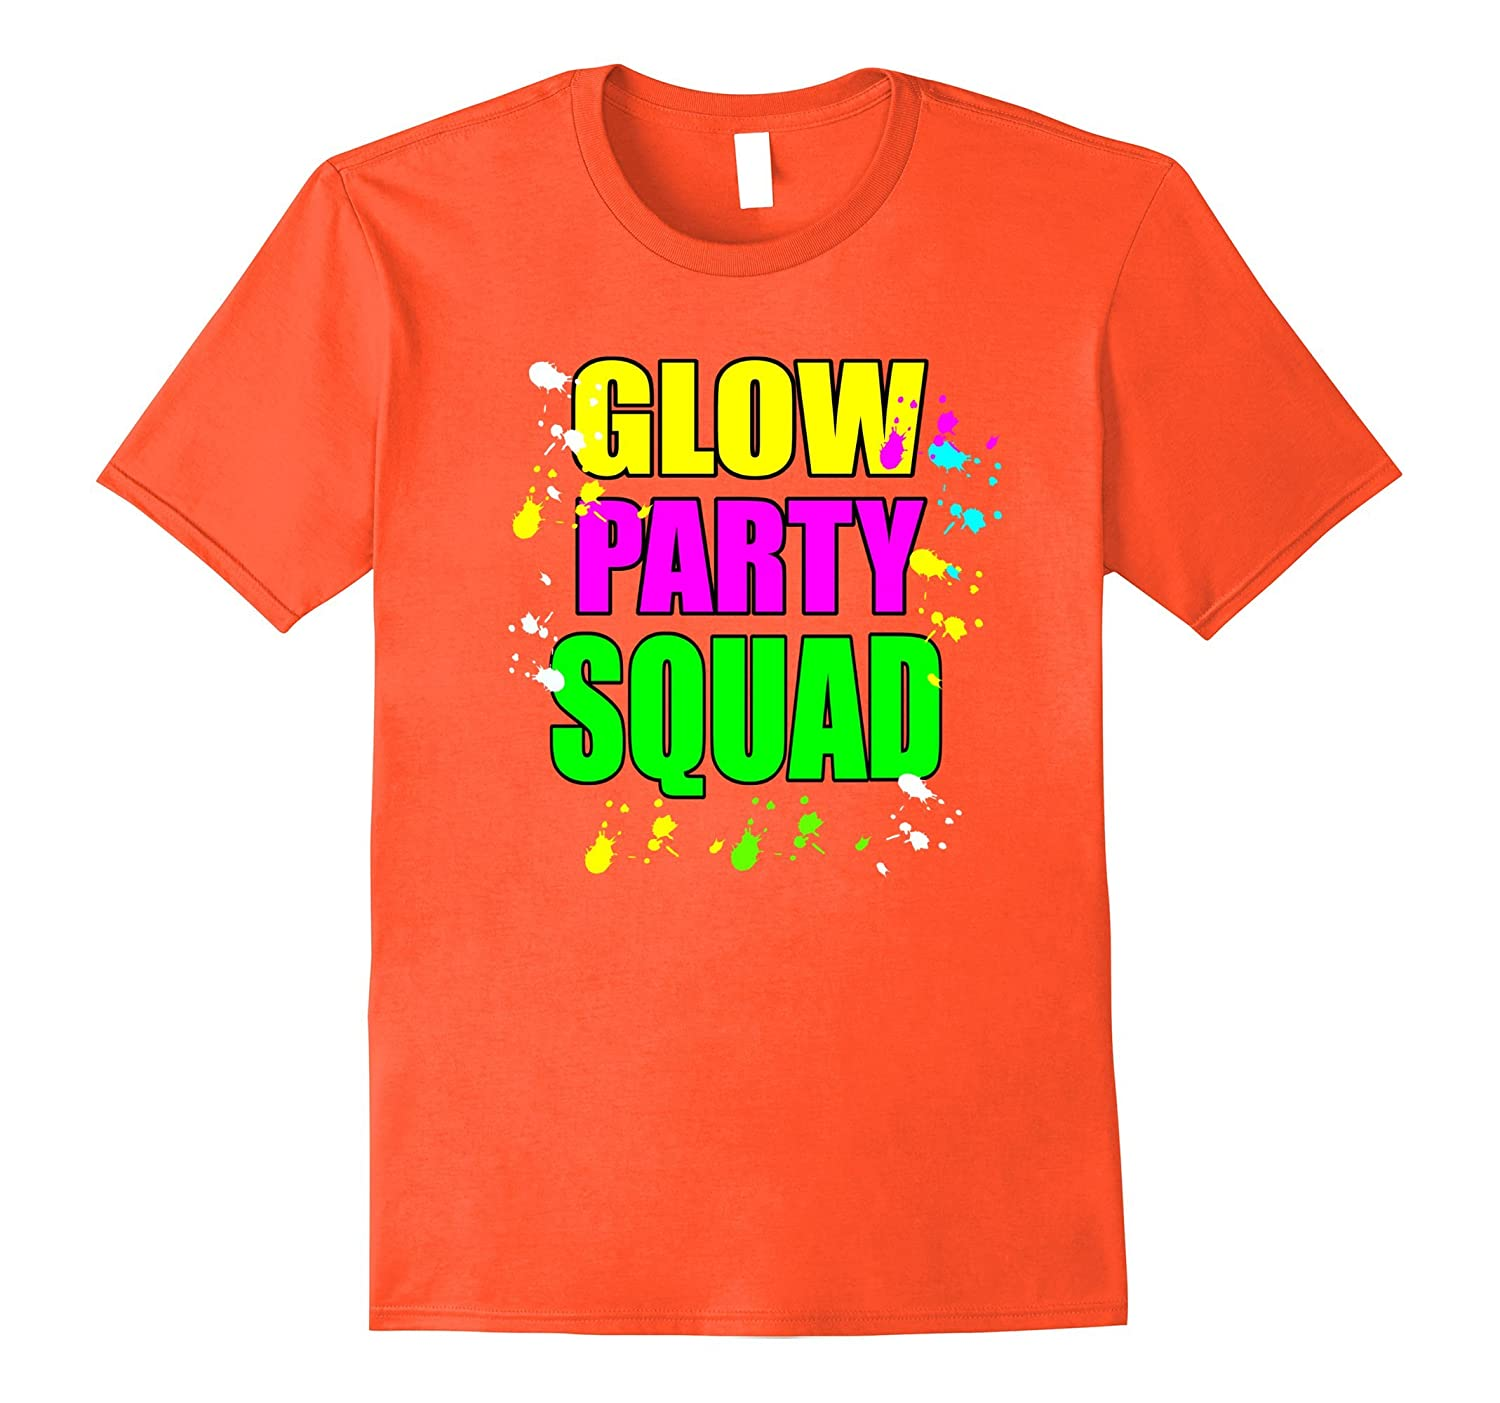 Glow Party Squad Paint Splatter Effect Neon Shirt ANZ